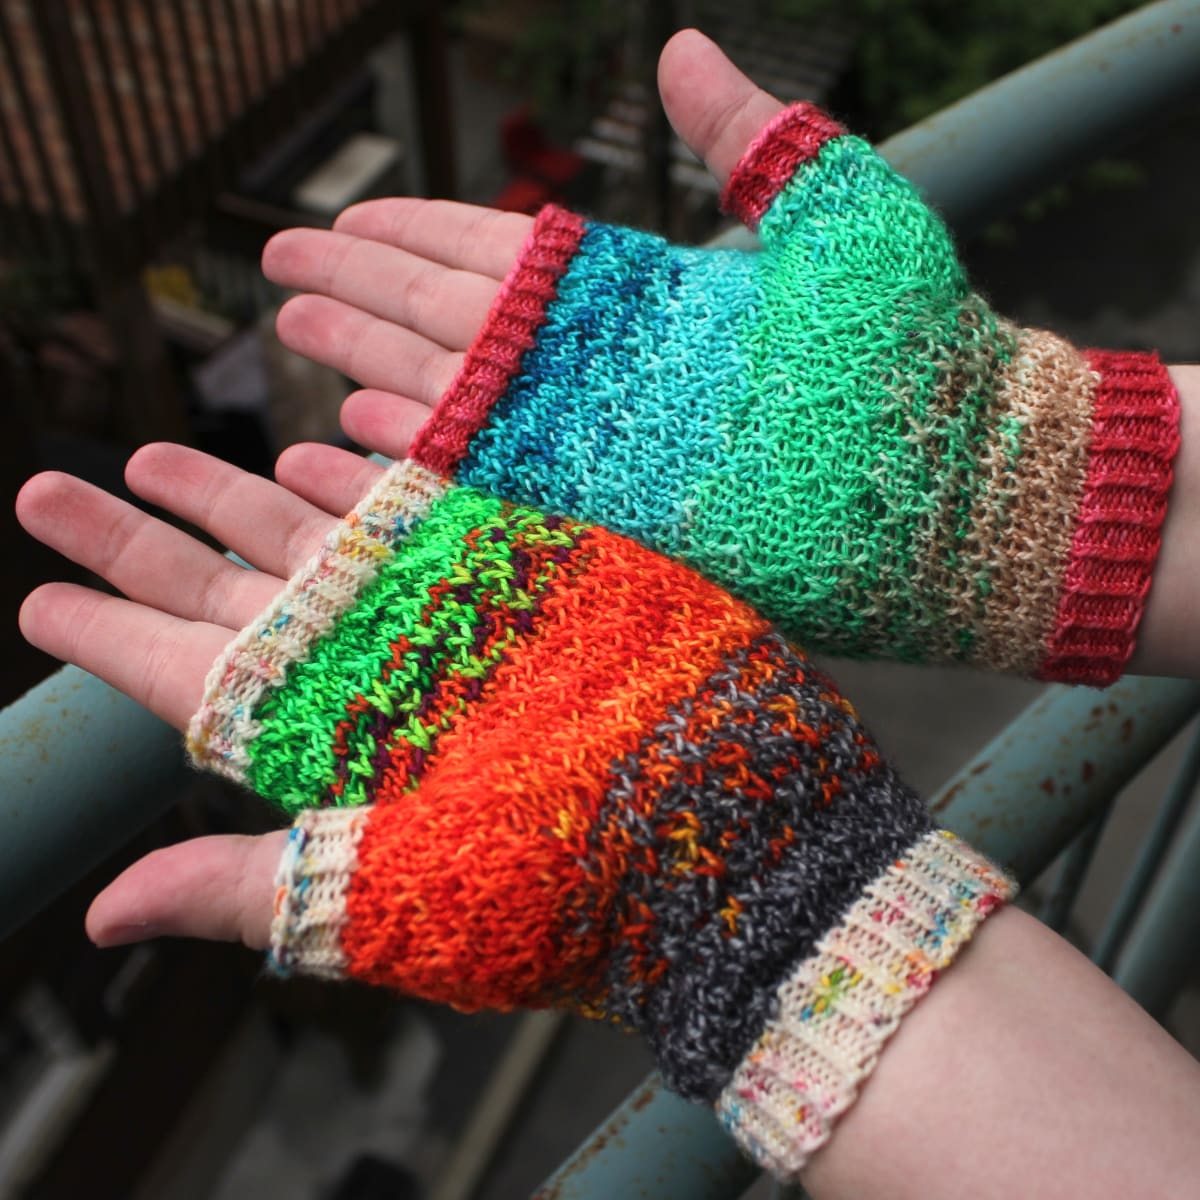 Palm-up view of mismatched multicoloured fingerless mitts with slipped-stitch texture.